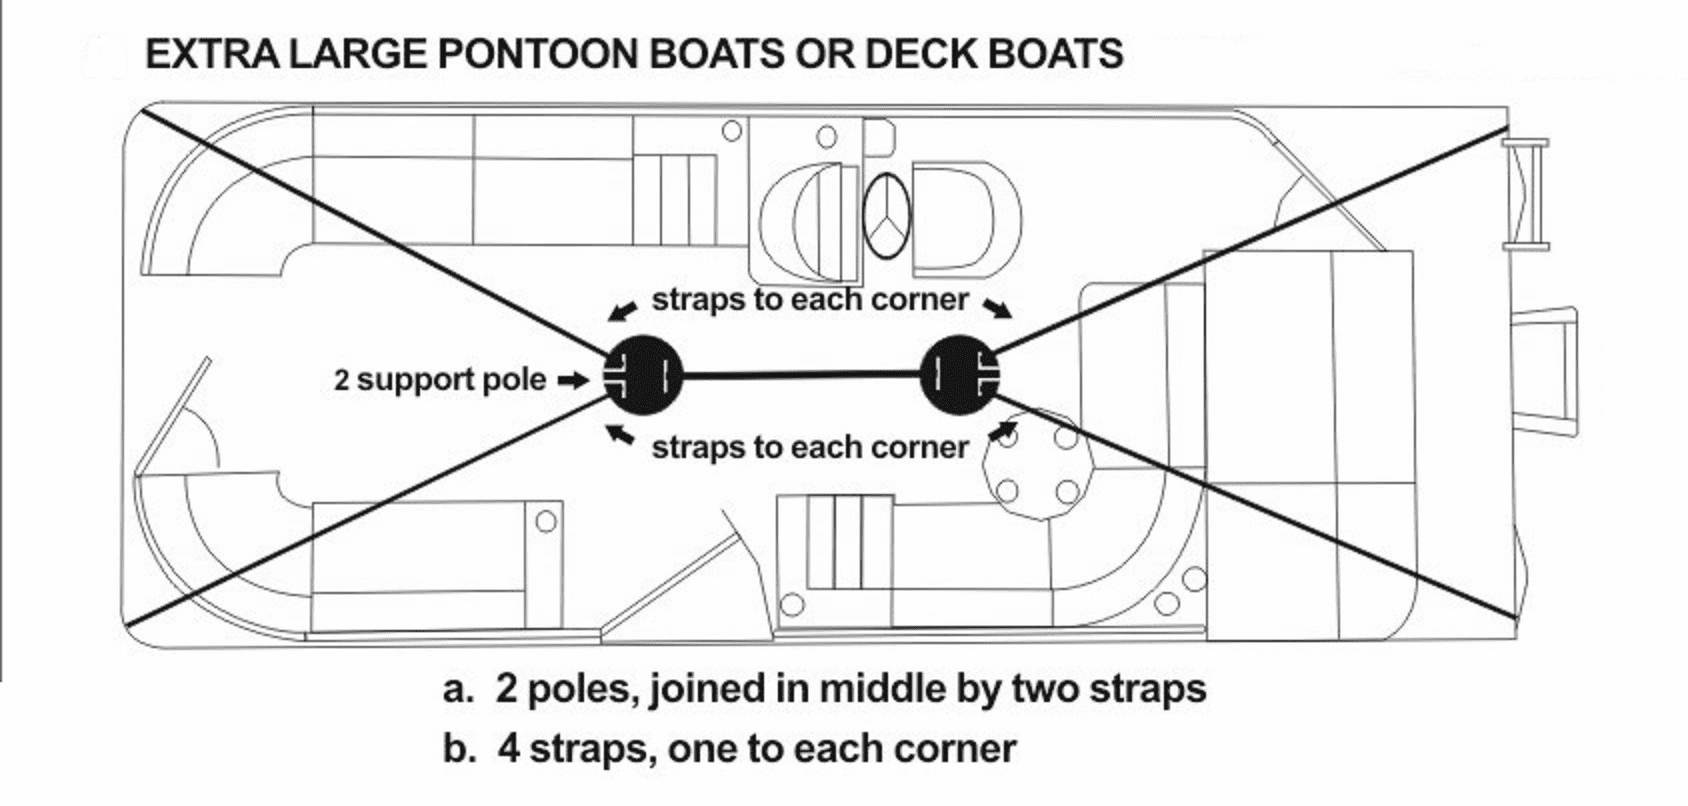 VORTEX TRIPLE PONTOON/DECK BOAT SUPPORT POLE SYSTEM